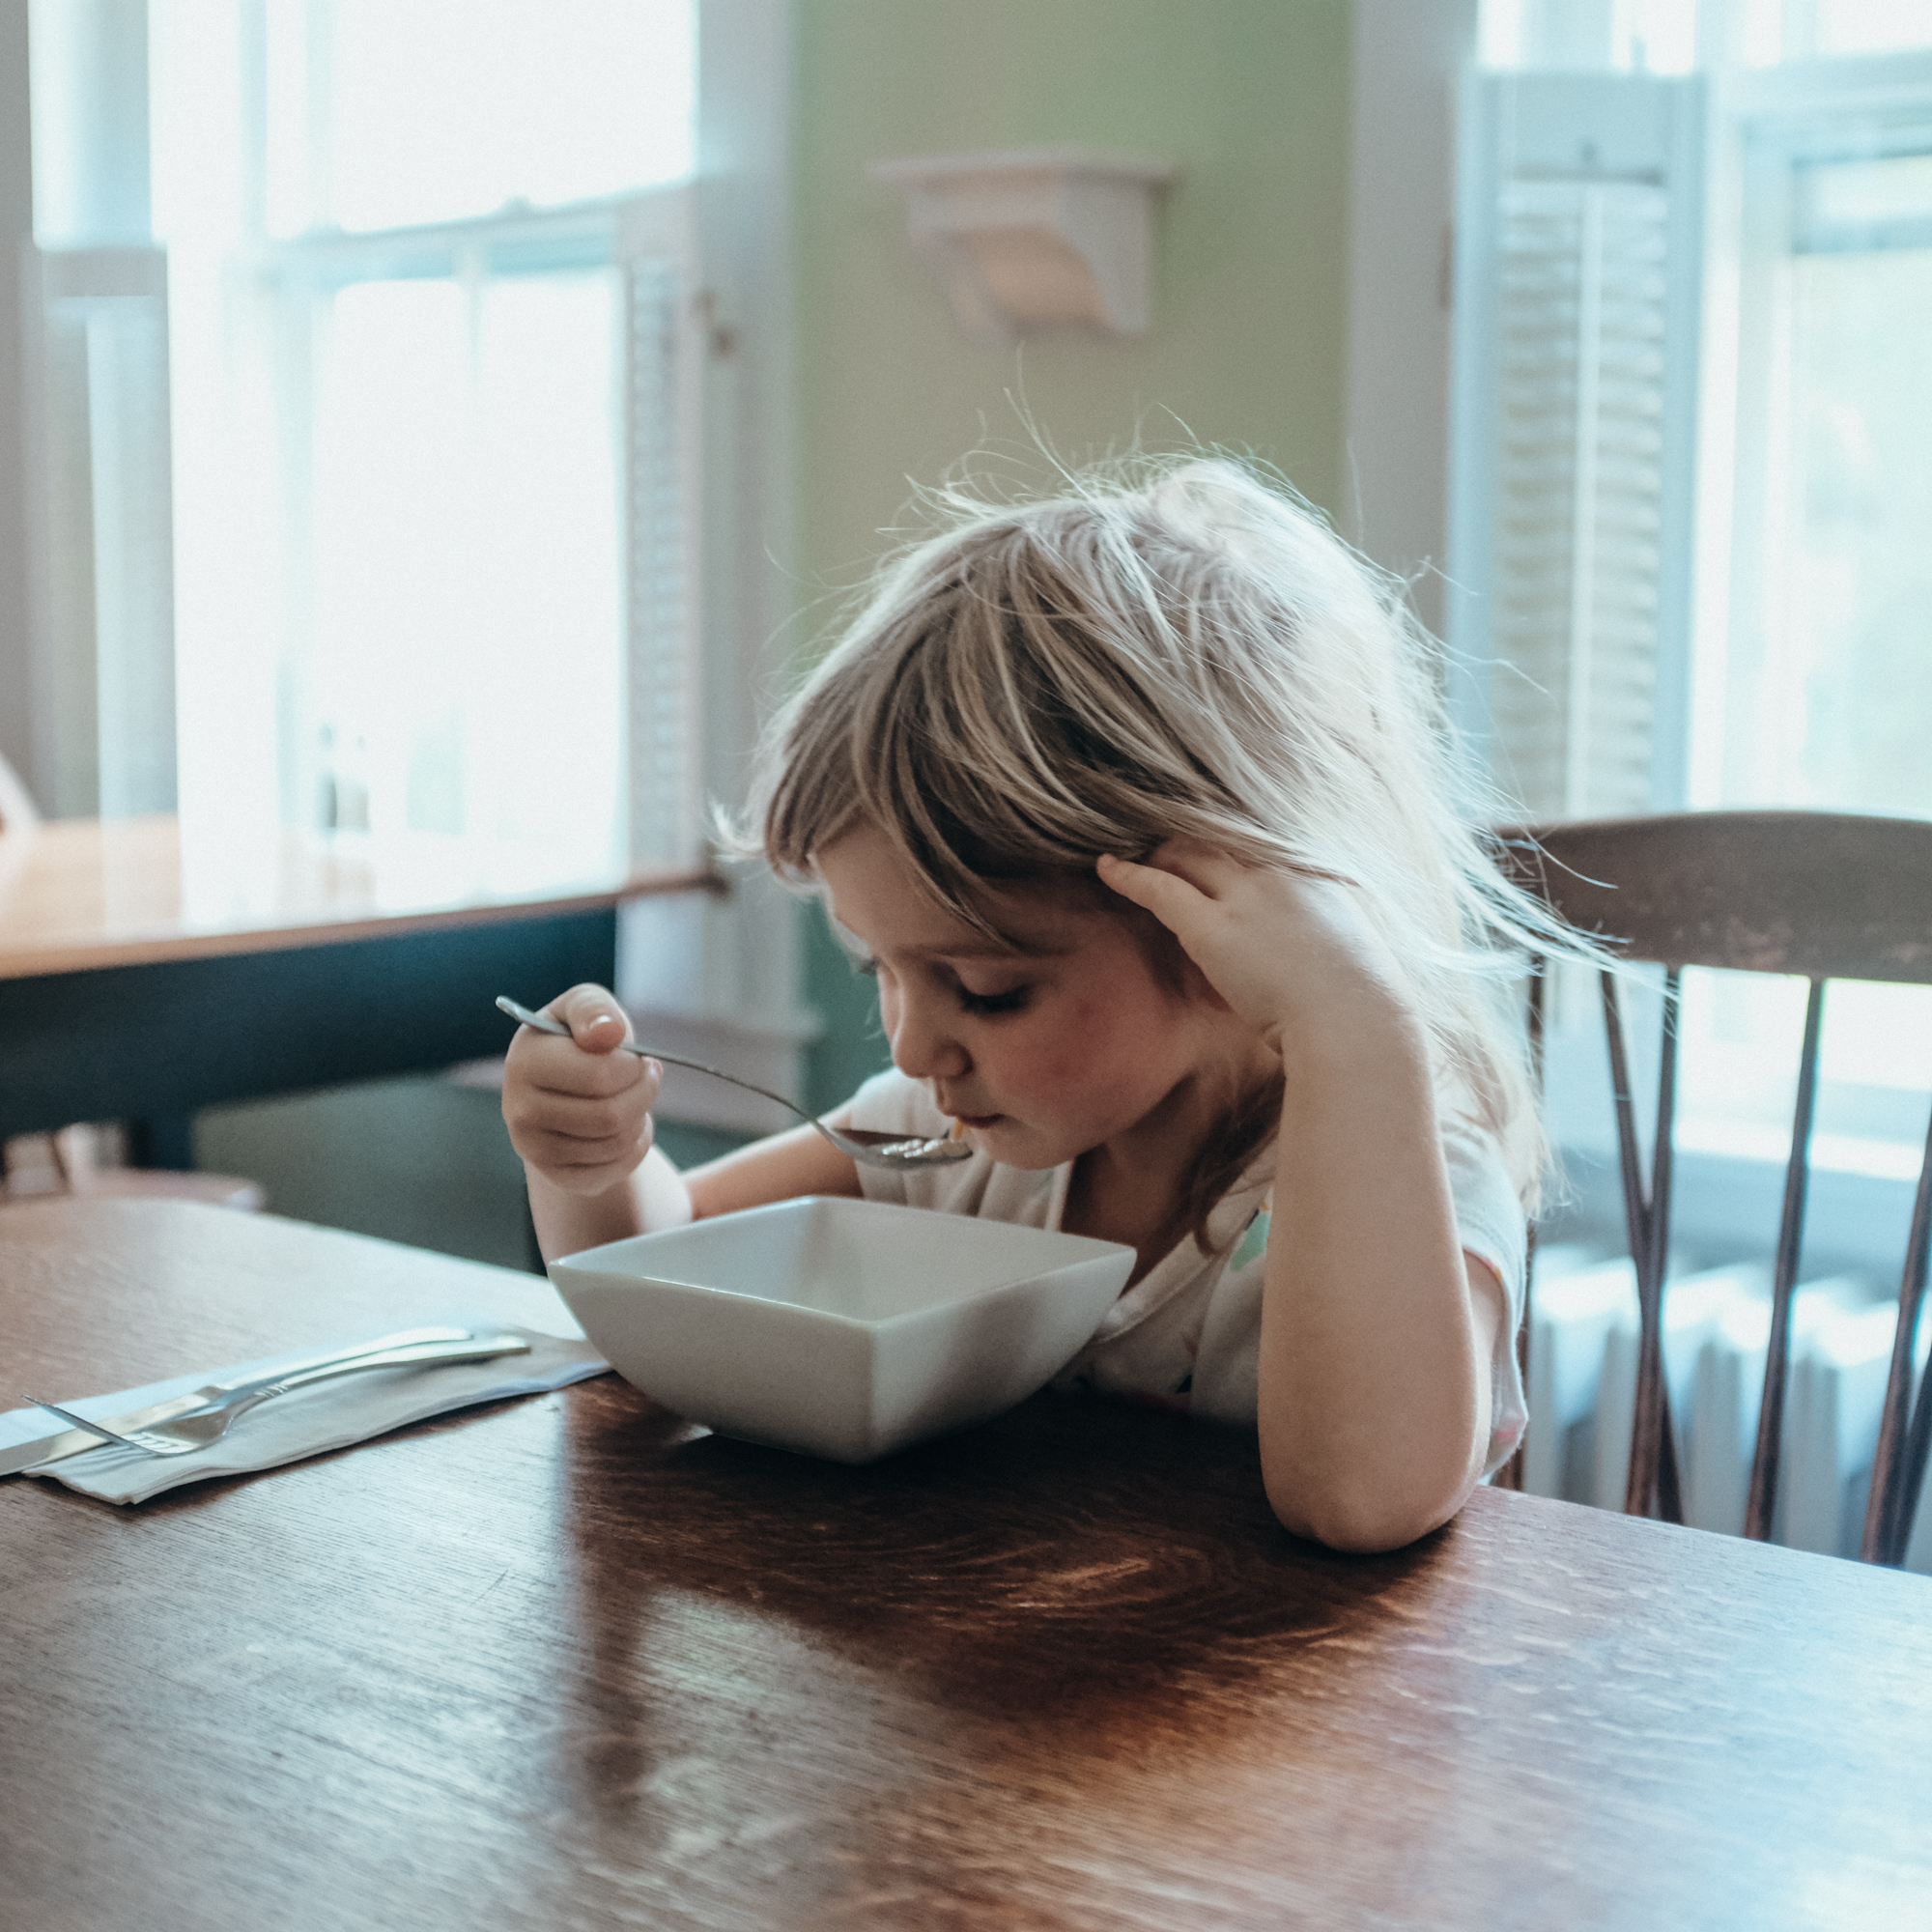 A girl eats a bowl of cereal at a wooden table, New Hampshire.